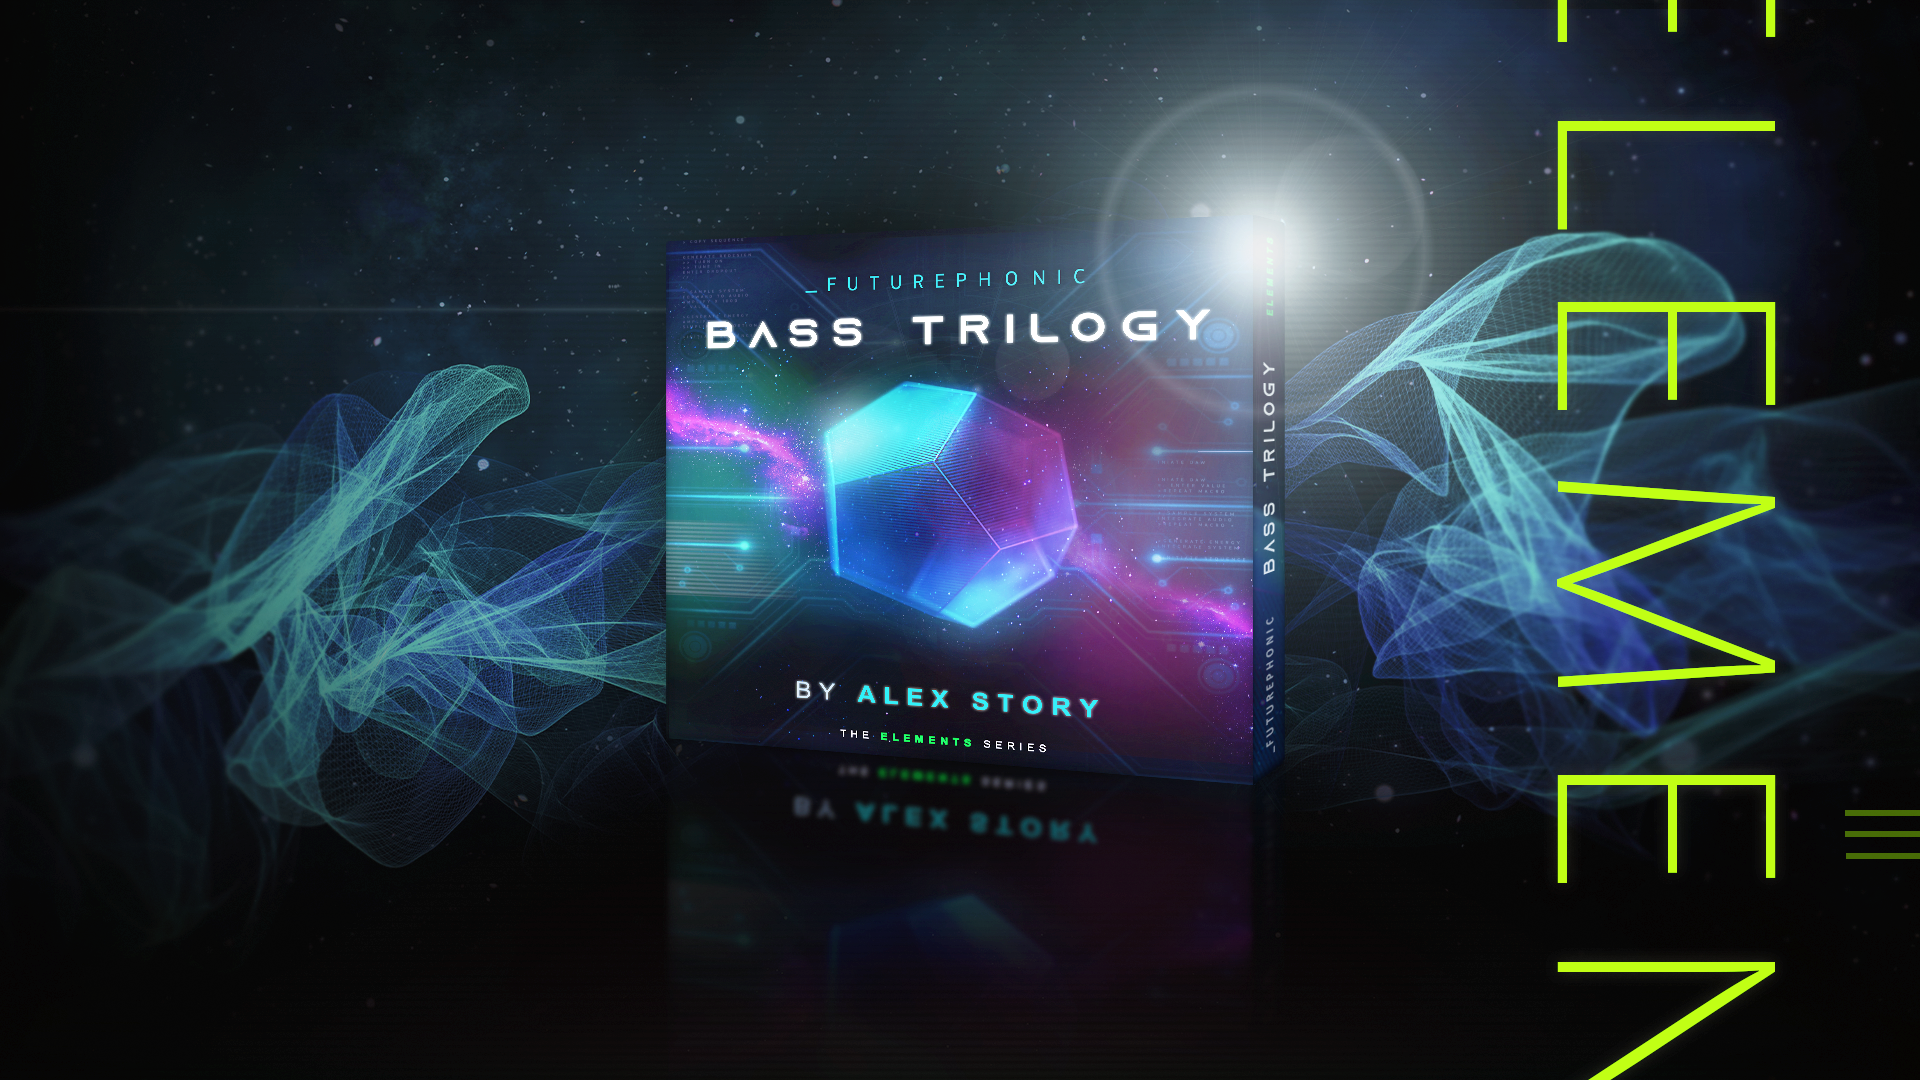 Bass Trilogy by Alex Story